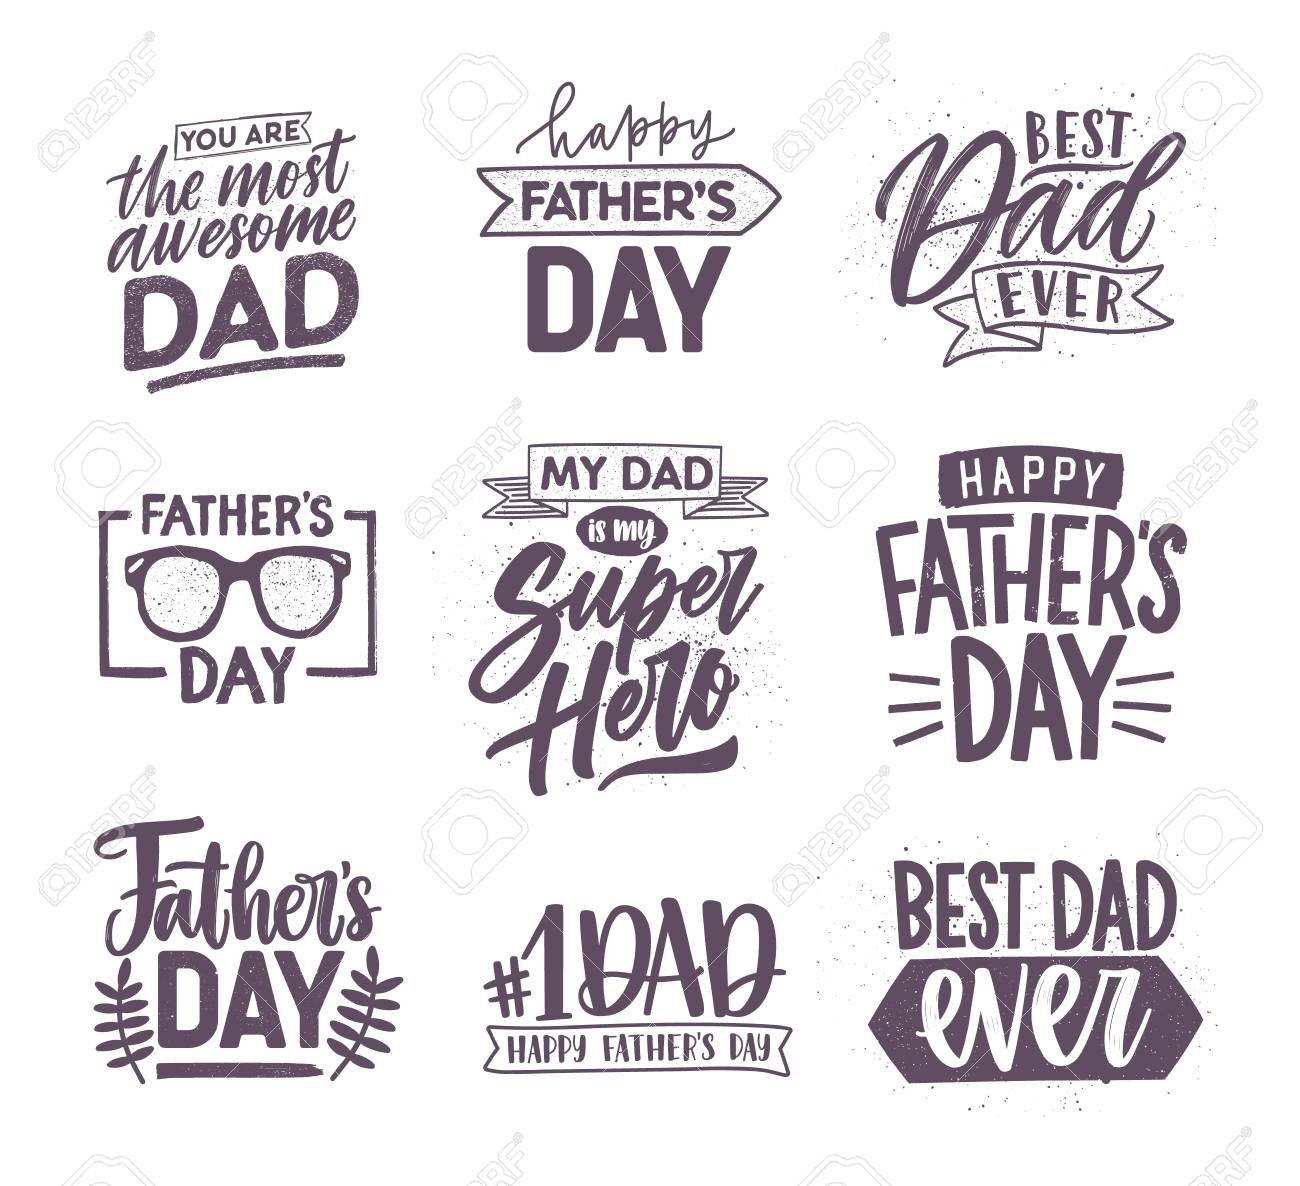 Collection of Fathers Day letterings handwritten with elegant fonts and decorated with festive elements. Bundle of holiday inscriptions isolated on white background. Monochrome vector illustration. - 102251630